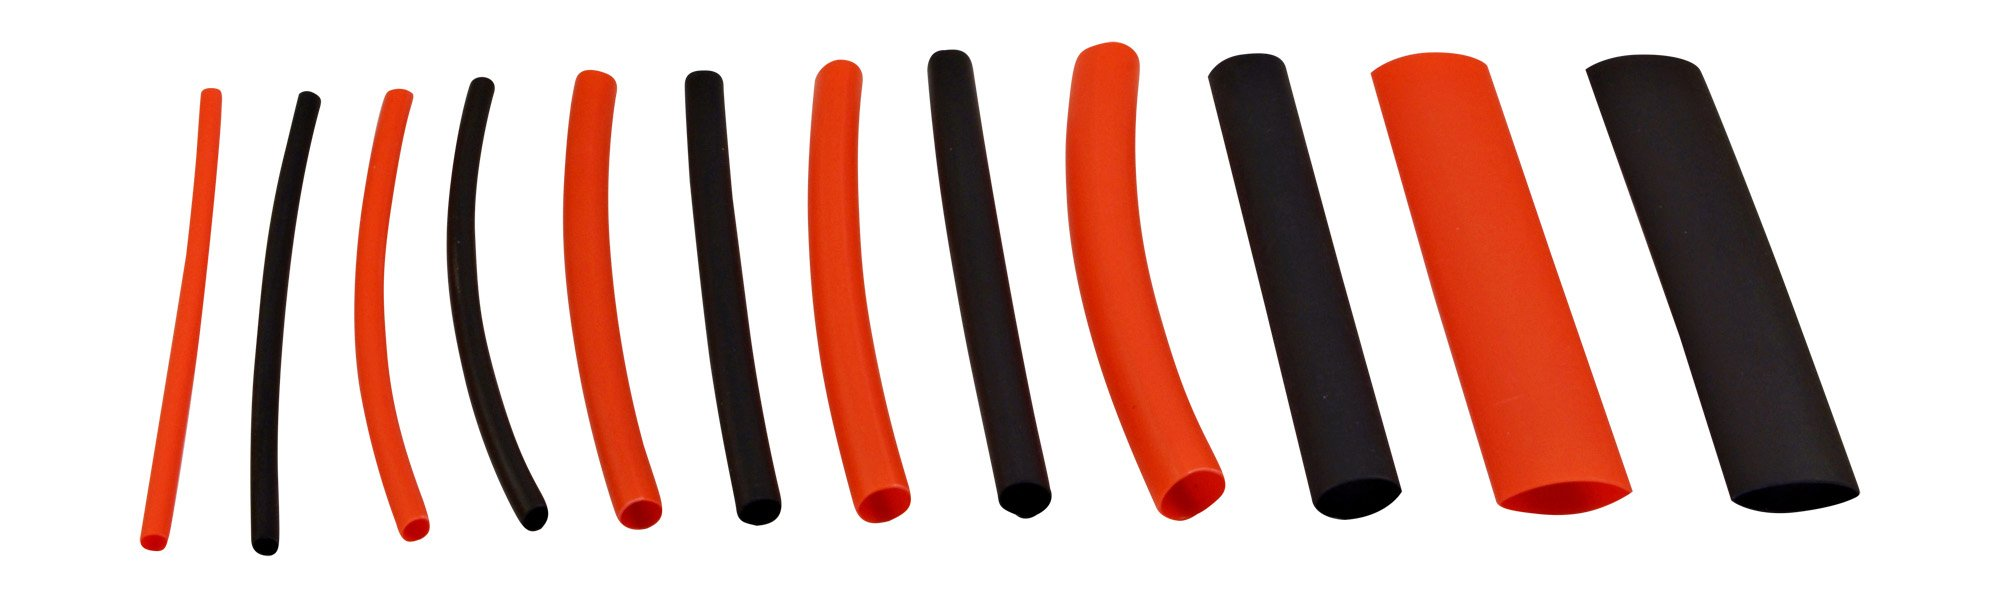 130 PC. Dual Wall Adhesive Marine Heat Shrink Kit - 3:1 Shrink Ratio - Black and Red by Simple Electric Solutions (Image #4)